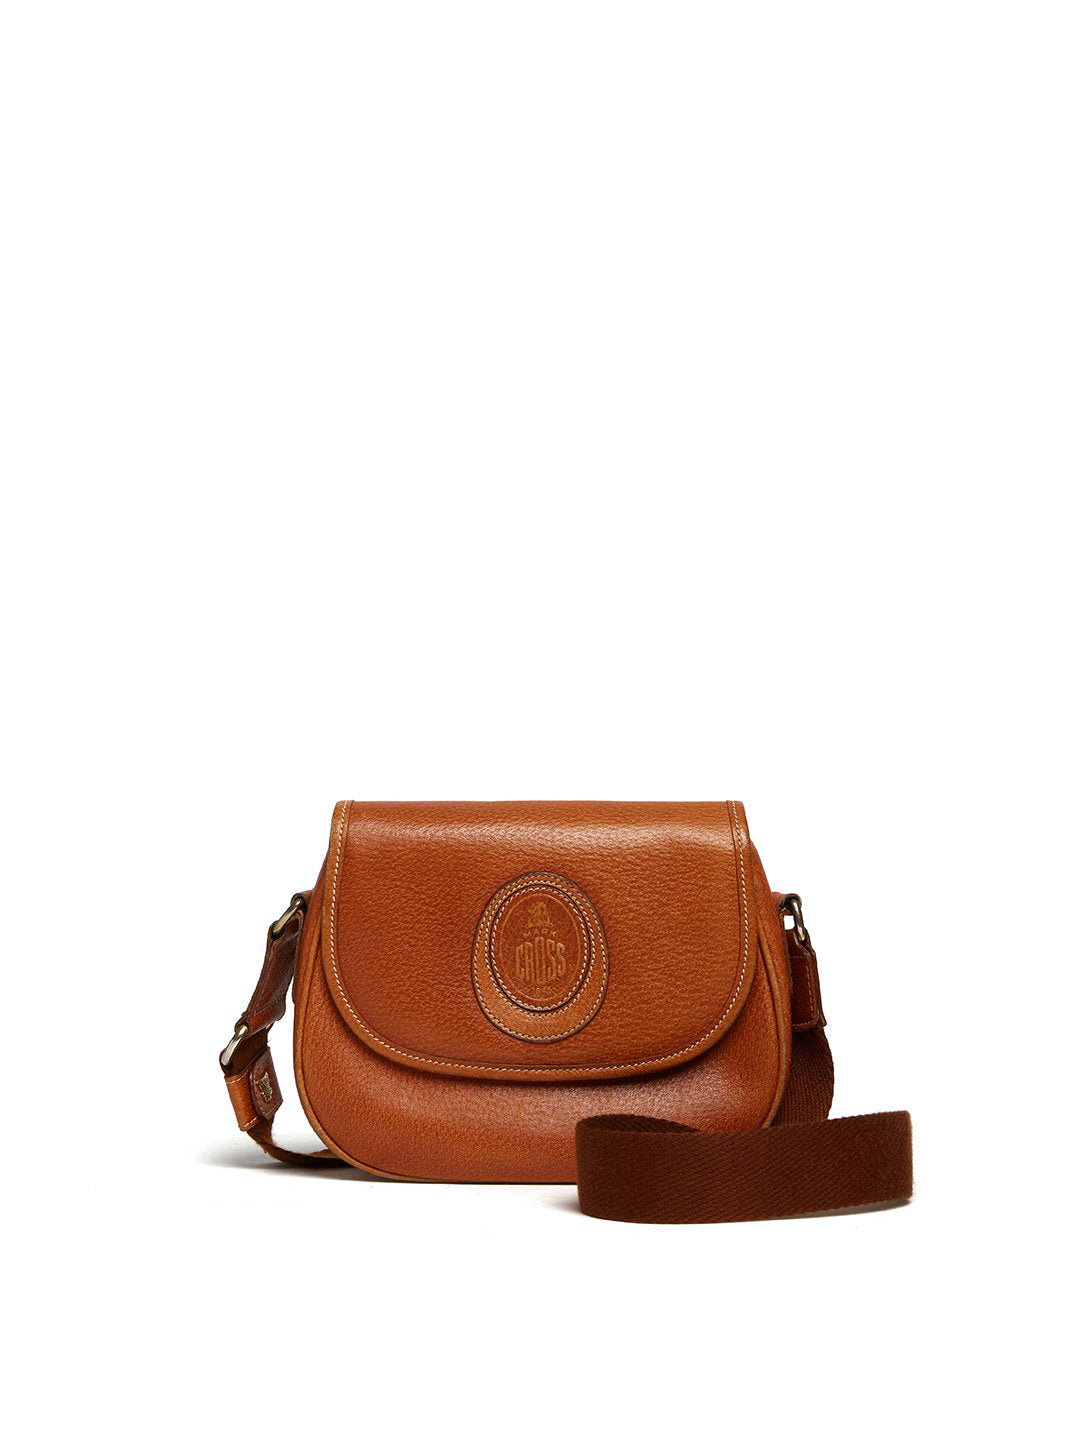 Vintage Leather Crossbody Bag With Logo